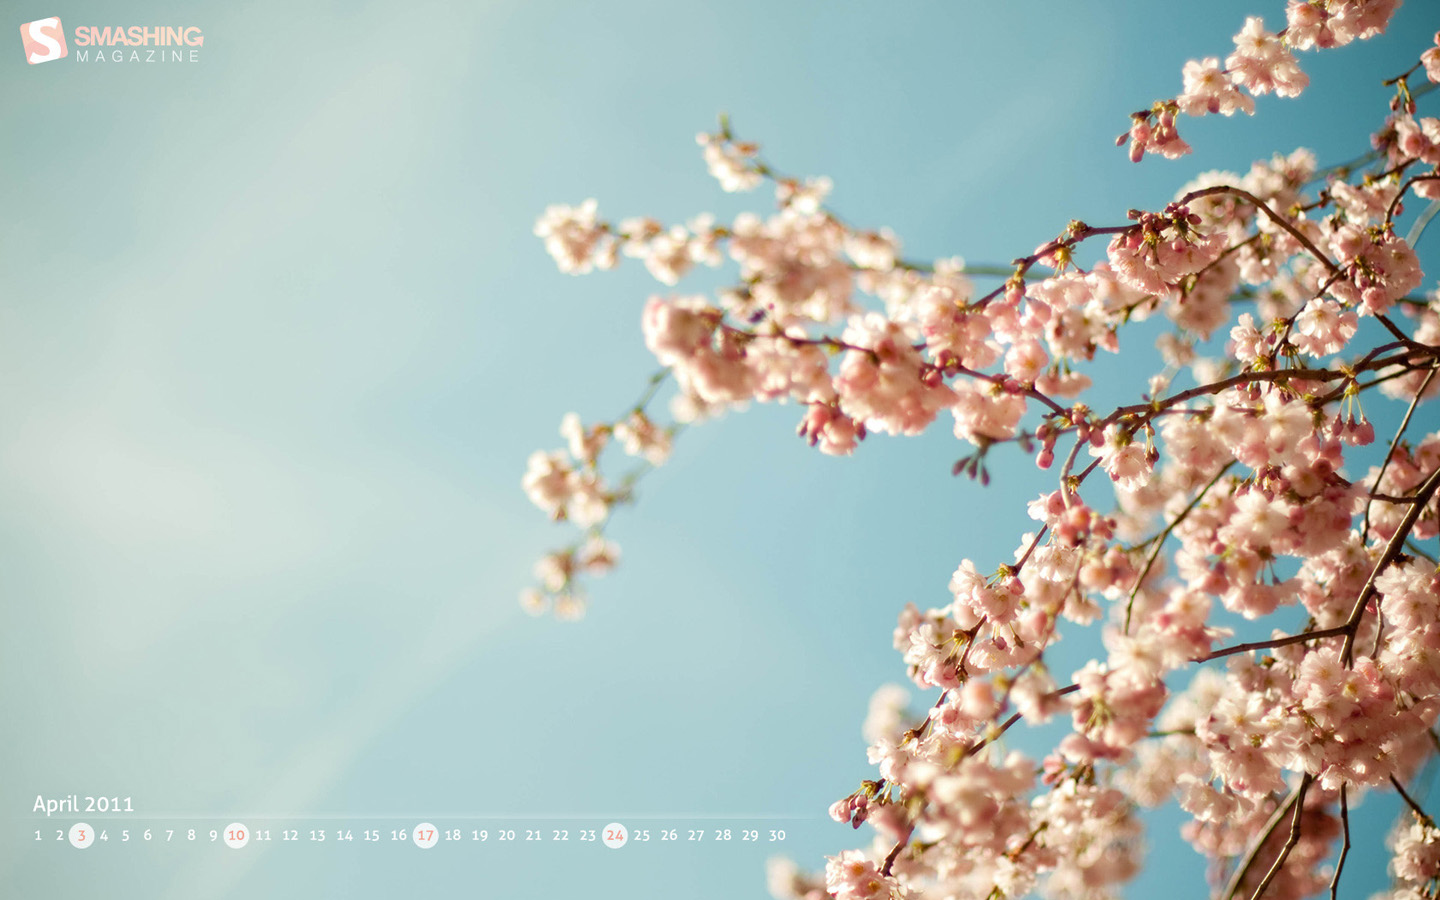 In January Calendar Wallpaper 29218